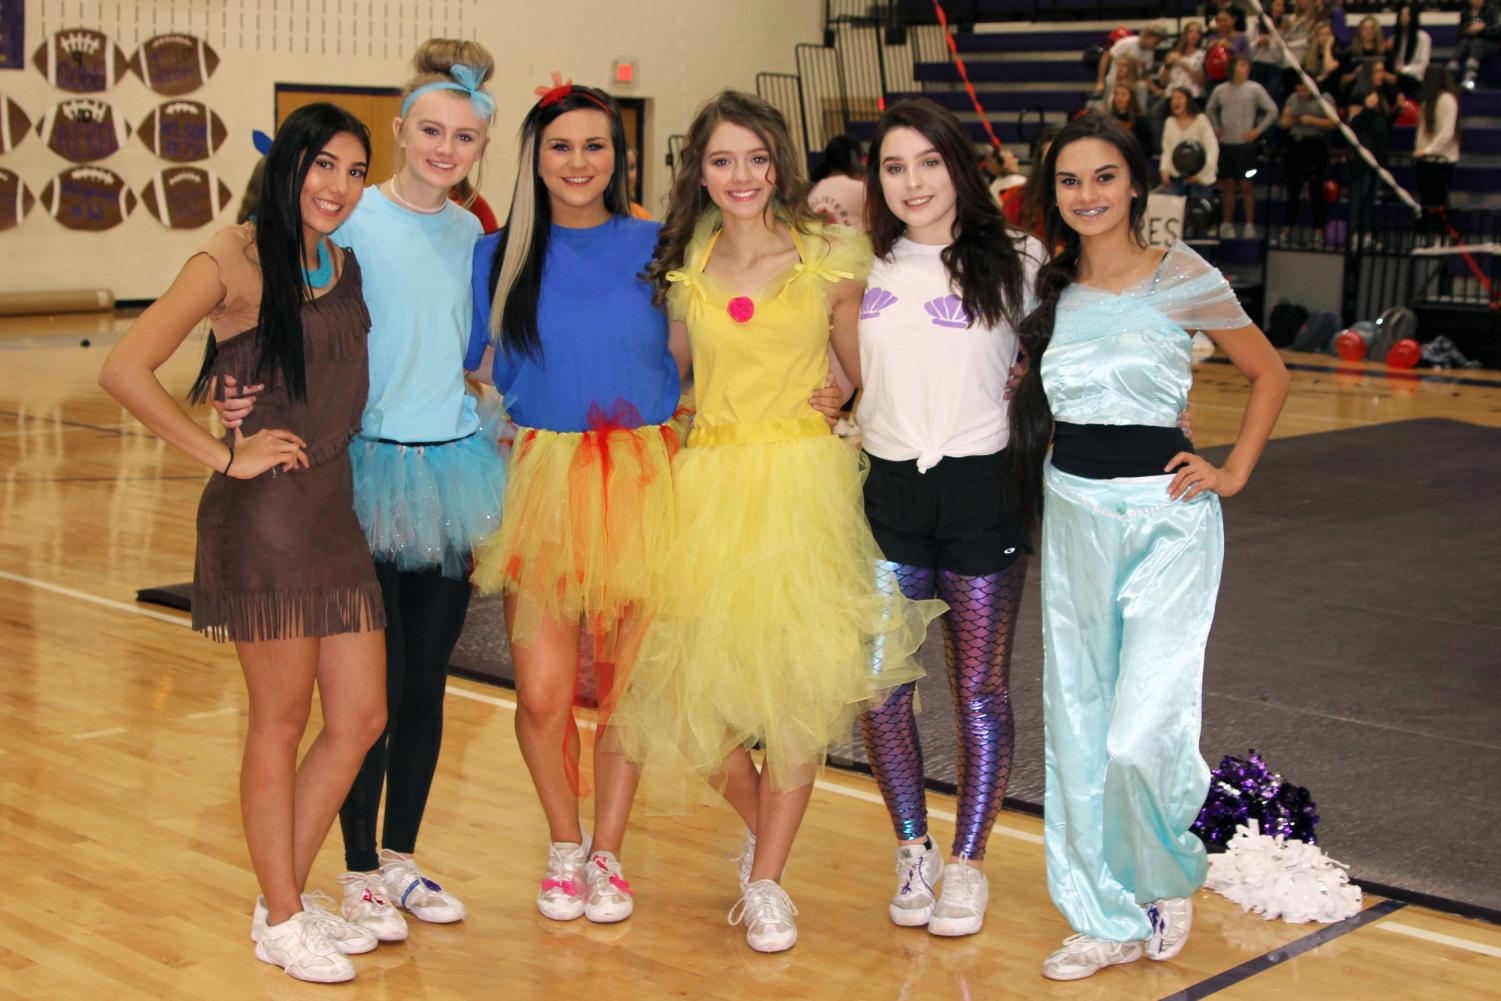 Inspired by Disney characters, cheerleaders dressed in costume for the Nov. 2 pep rally. Alyssa Lackey, Jordan Smith, Addy McCollum, Andi Wilcox, Halee Owen and Kiki Khan represent a variety of Disney heroines.